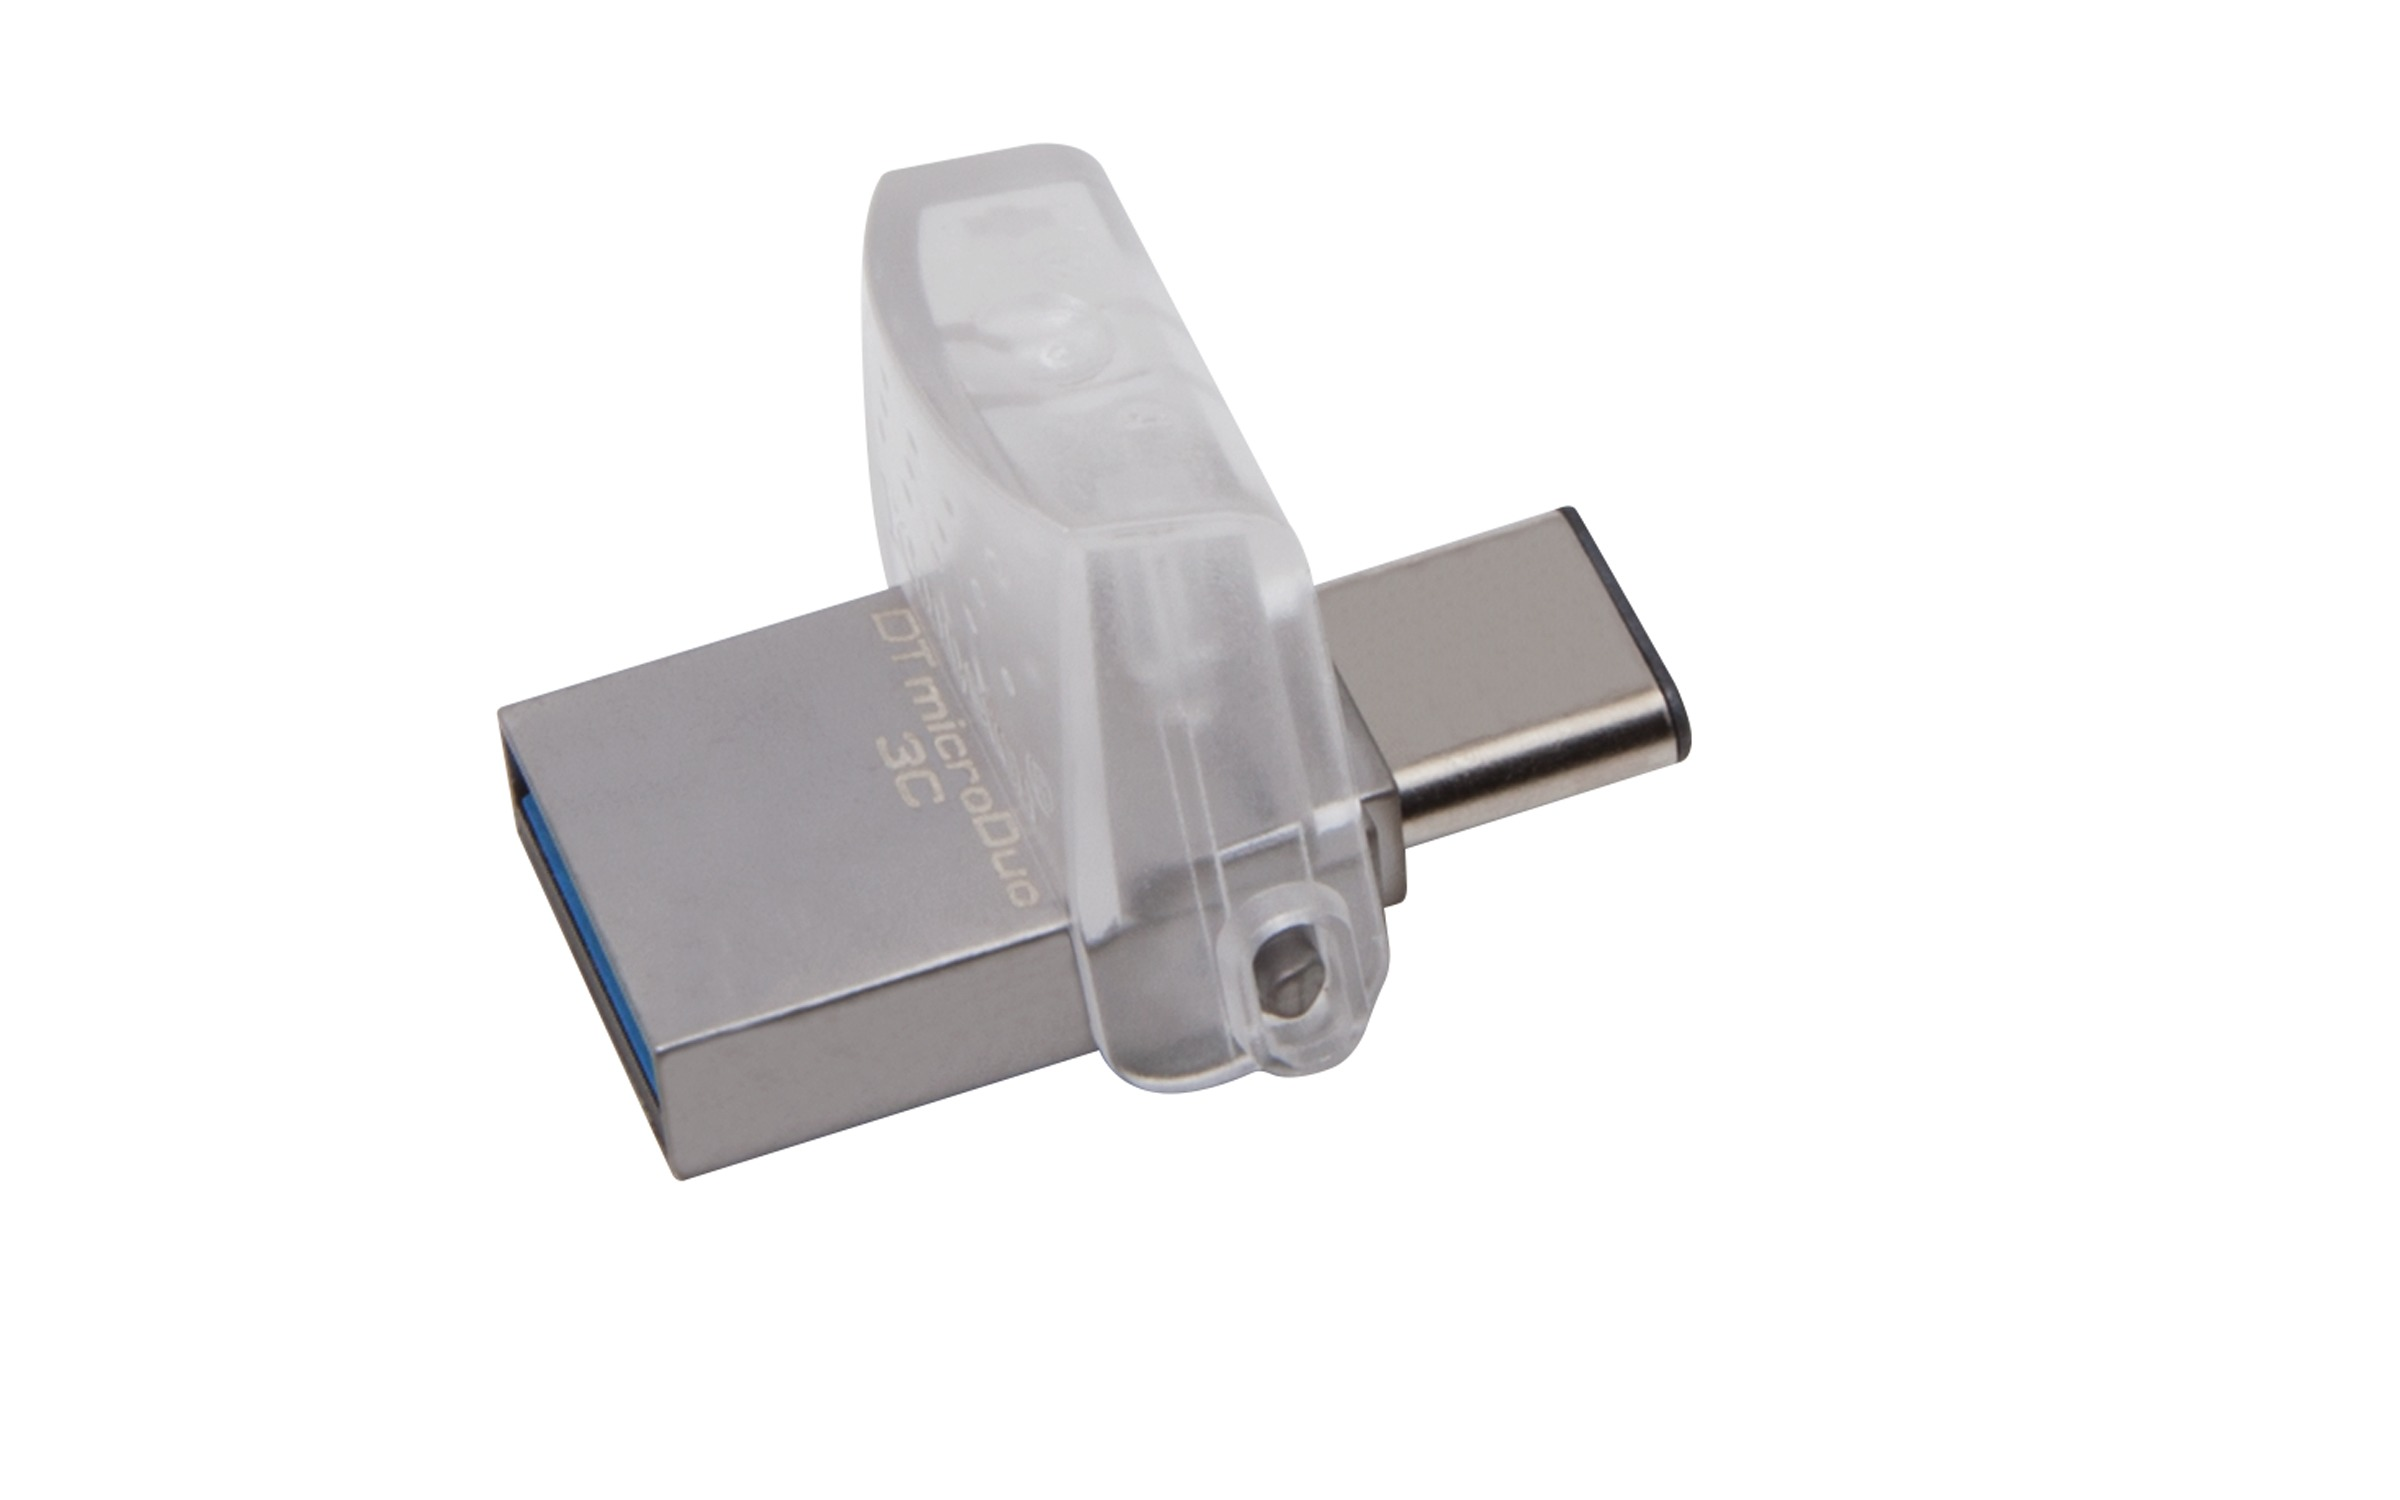 Korting Kingston DataTraveler USB 3.0 MicroDuo 32GB usb sticks